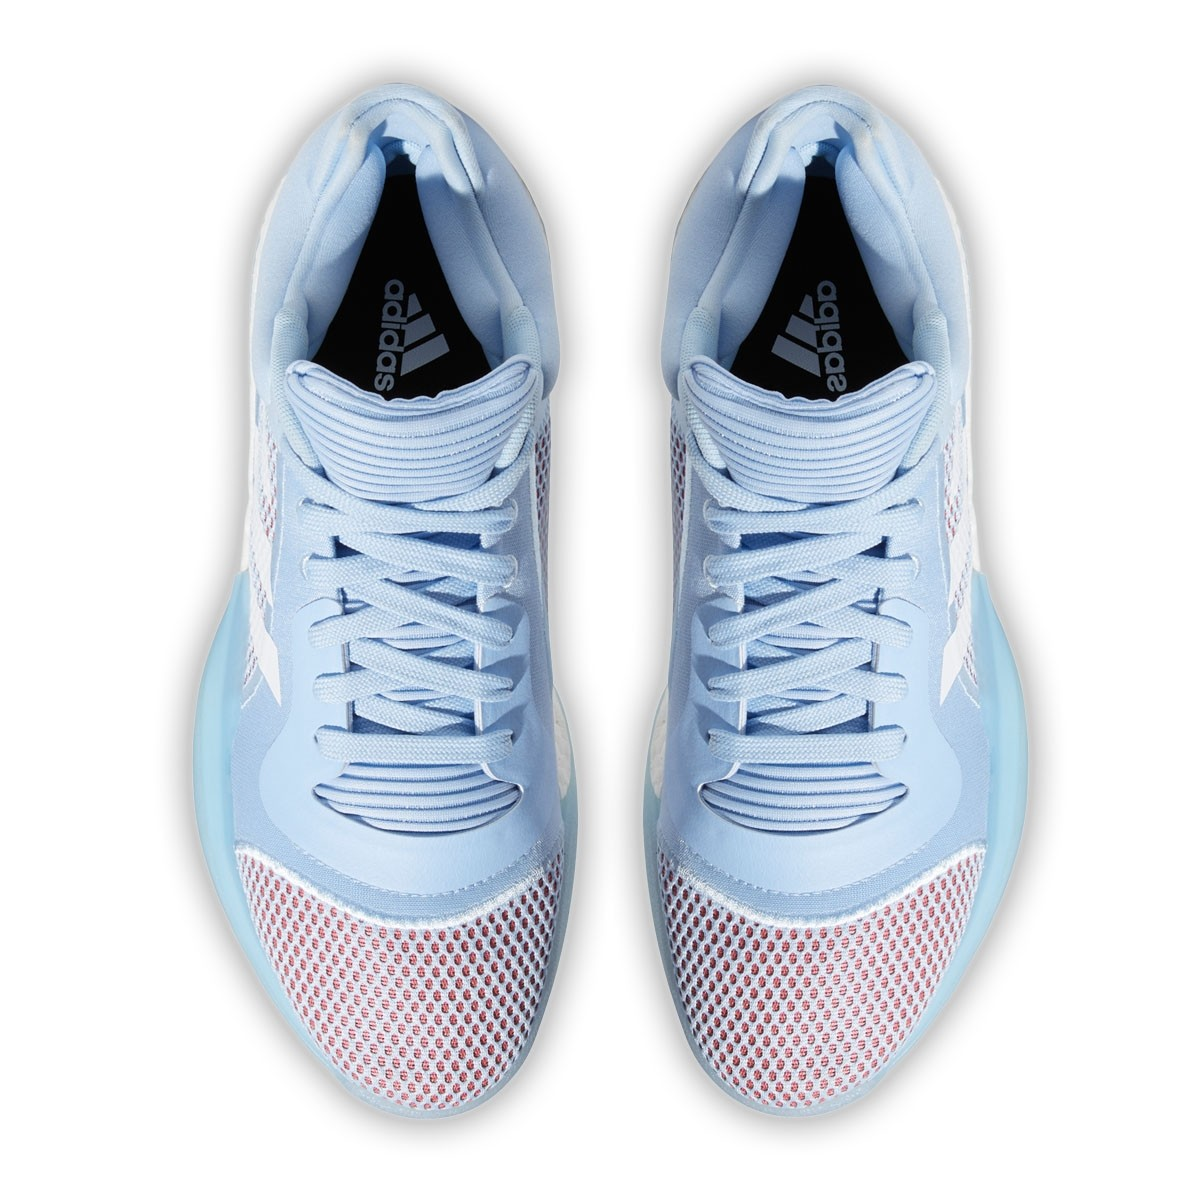 Herméticamente noche Vadear  Buy ADIDAS Marquee Boost Low 'Glow Blue' Basketball shoes & sneakers